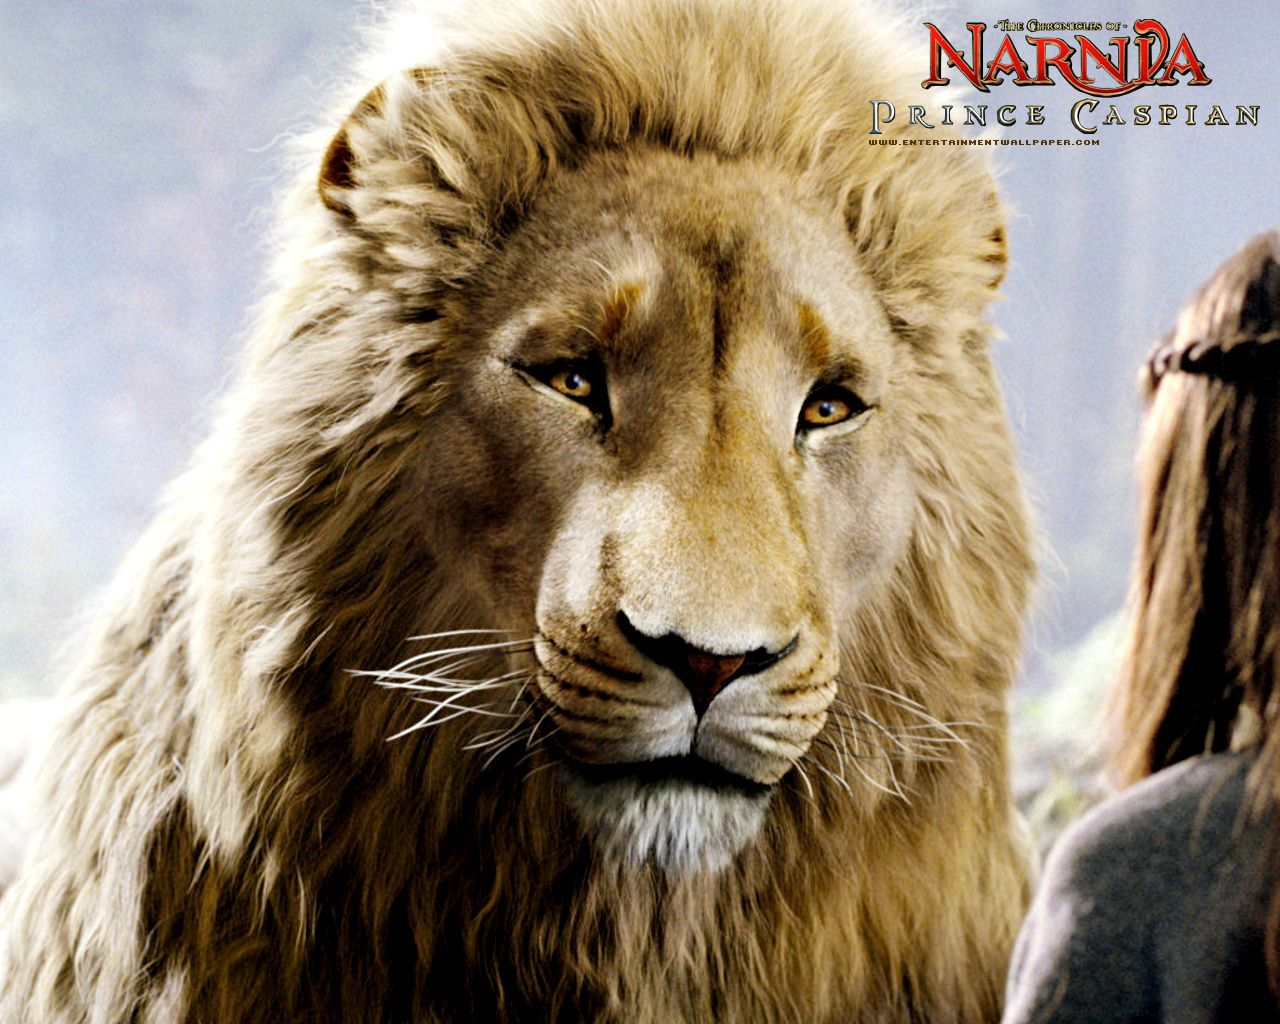 Aslan and Prince Caspian from Chronicles of Narnia Desktop Wallpaper for Narnia Aslan Wallpaper  54lyp